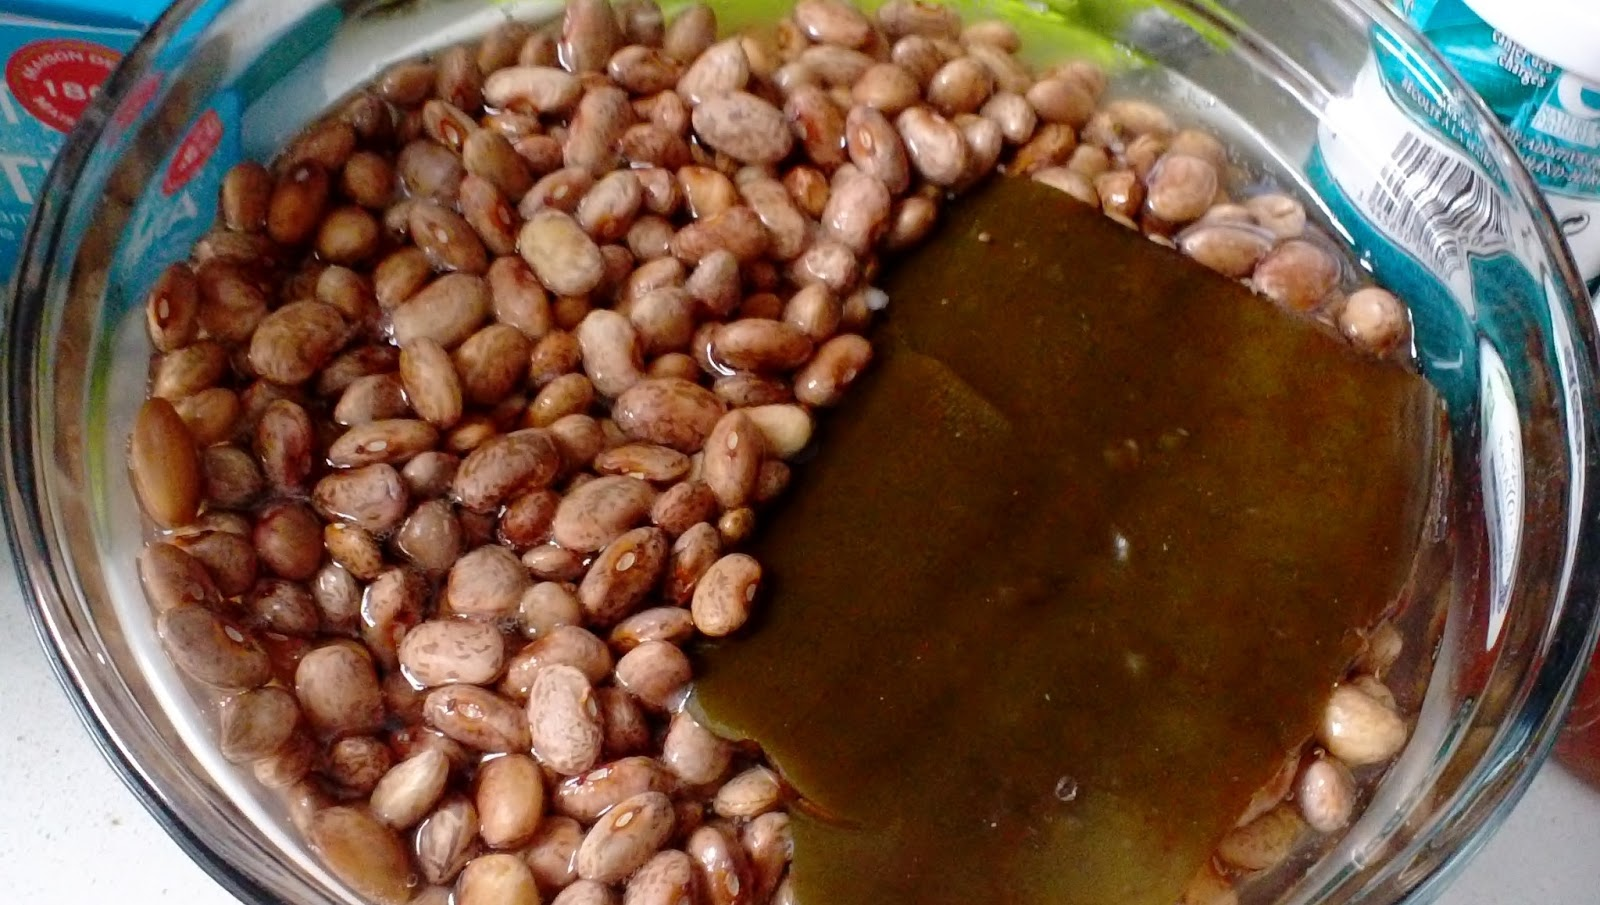 The Omnivore and the Vegetarian: Refried Beans Without the Refry